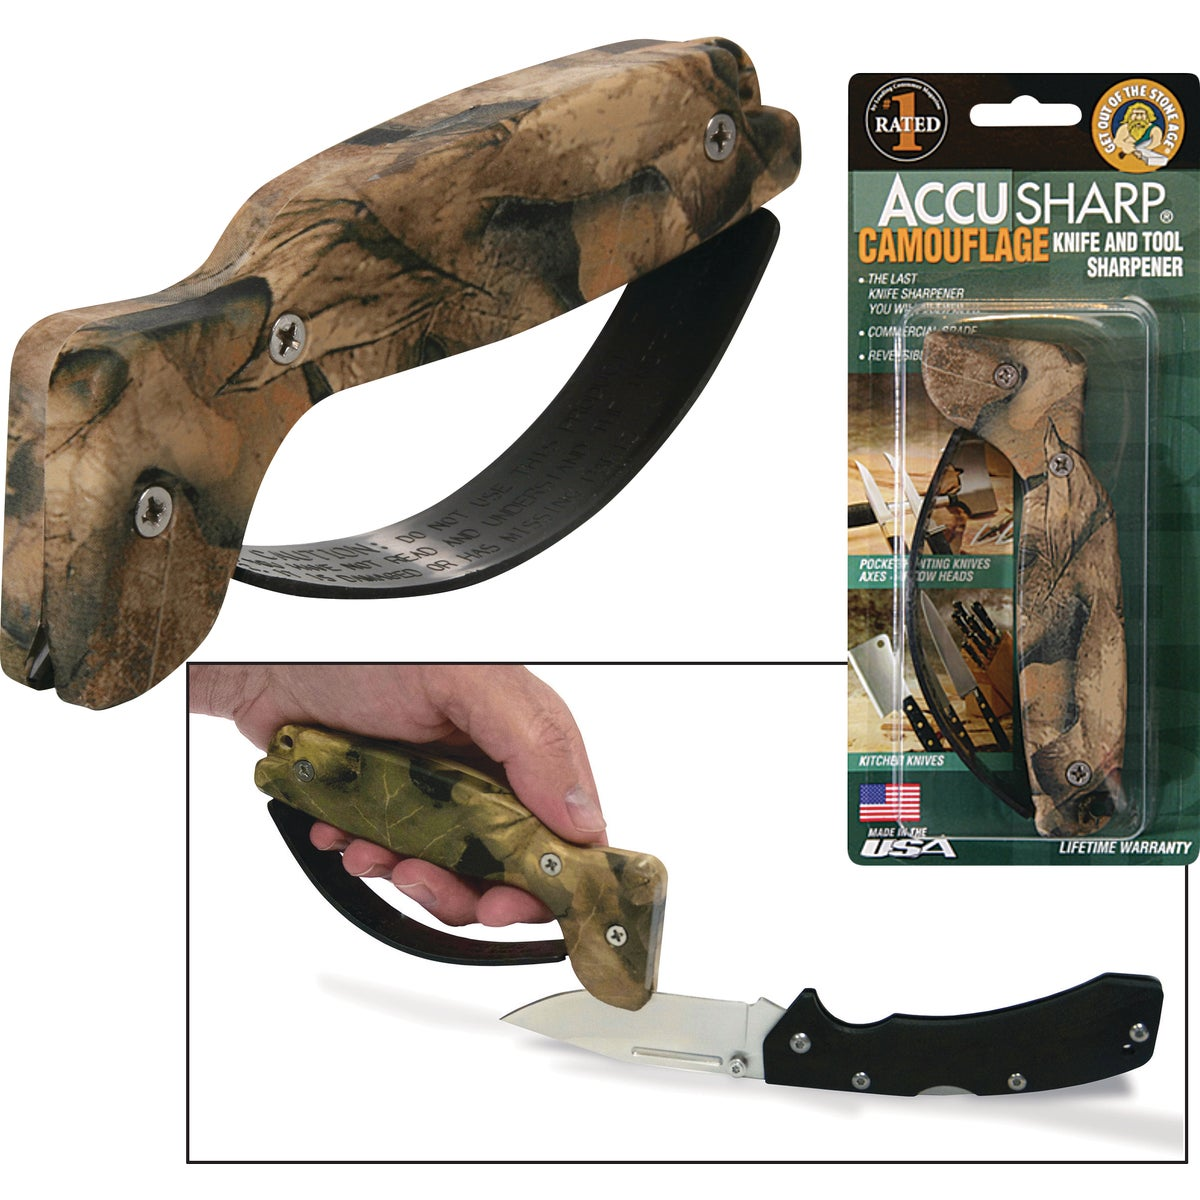 ACCUSHARP CAMO SHARPENER - 005C by Fortune Products Inc